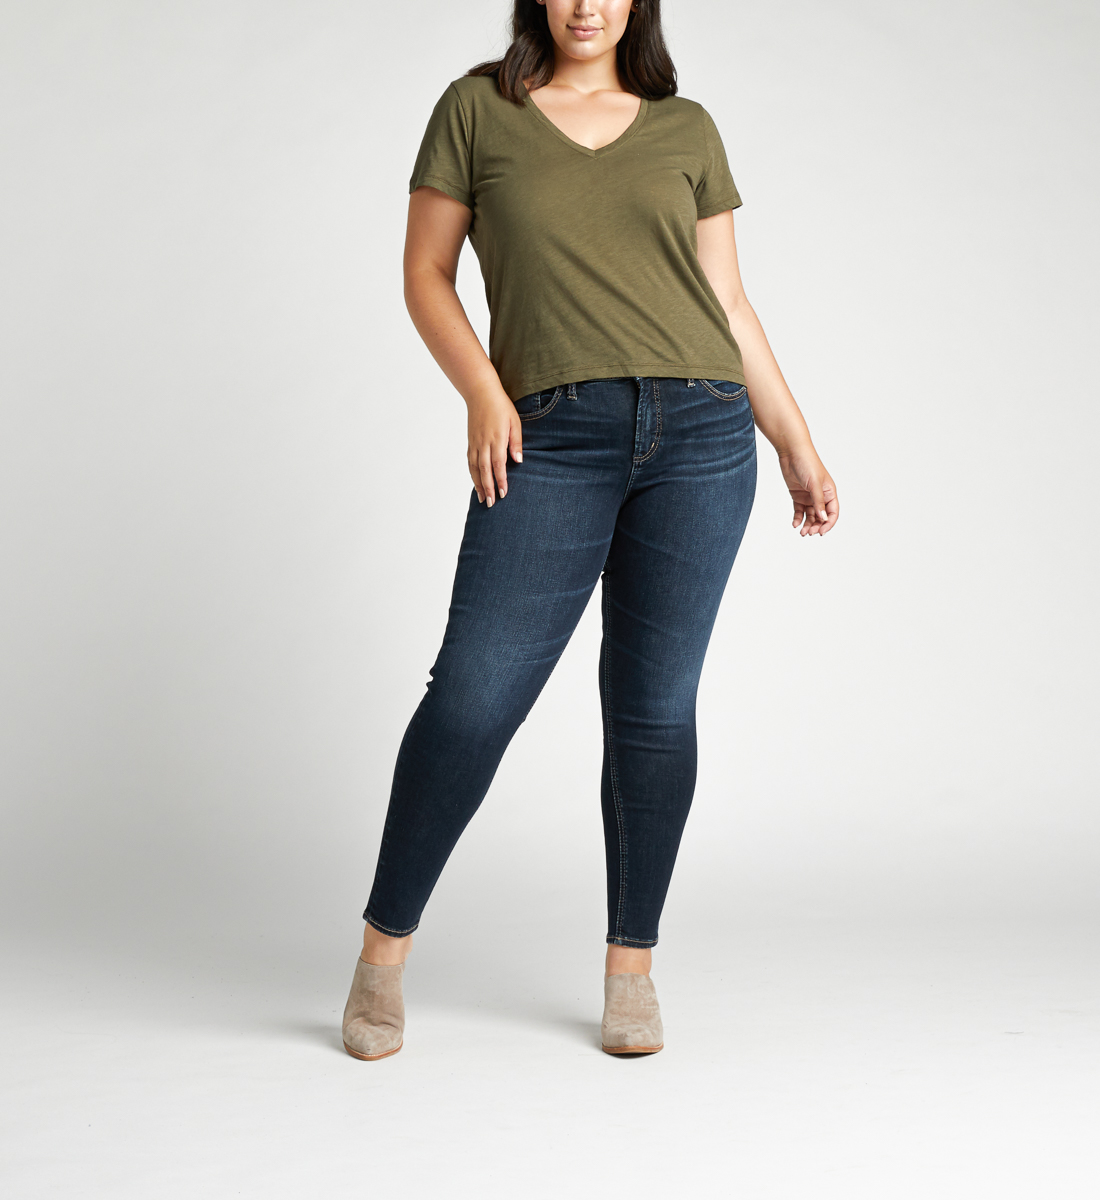 Avery High Rise Skinny Plus Size Jeans Alt Image 1